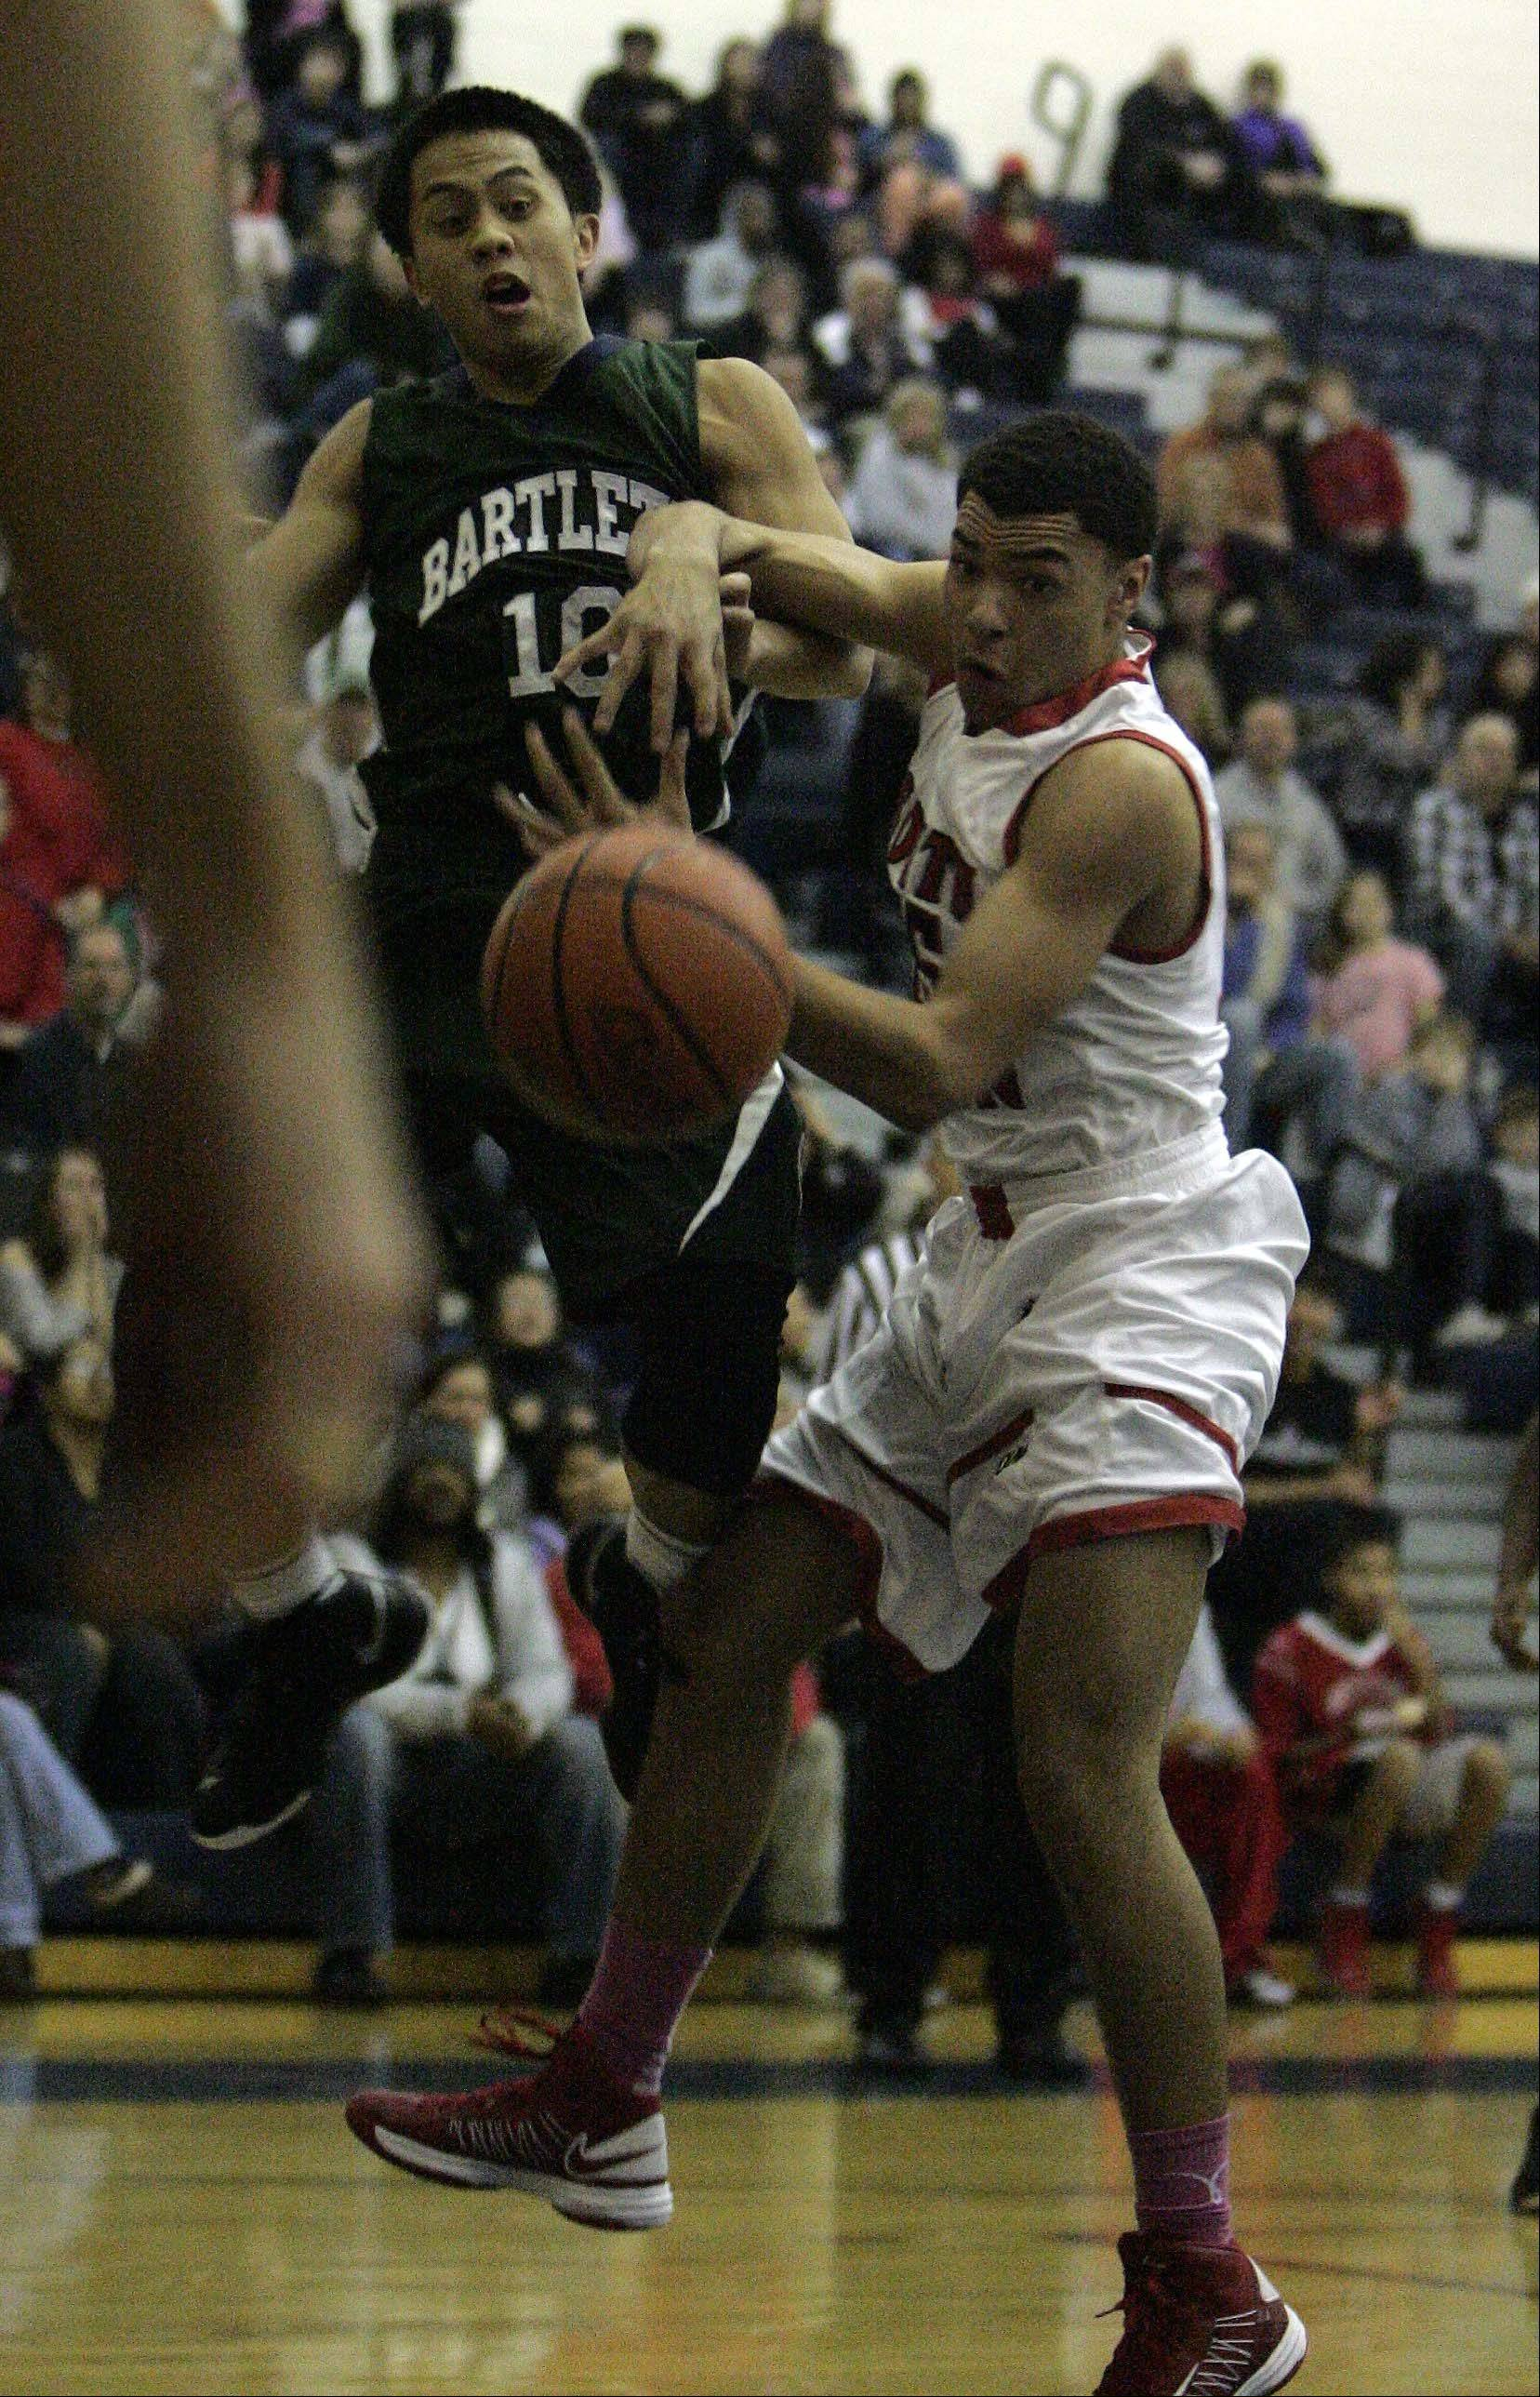 Images from the Bartlett vs. South Elgin boys basketball game Friday, December 7, 2012.